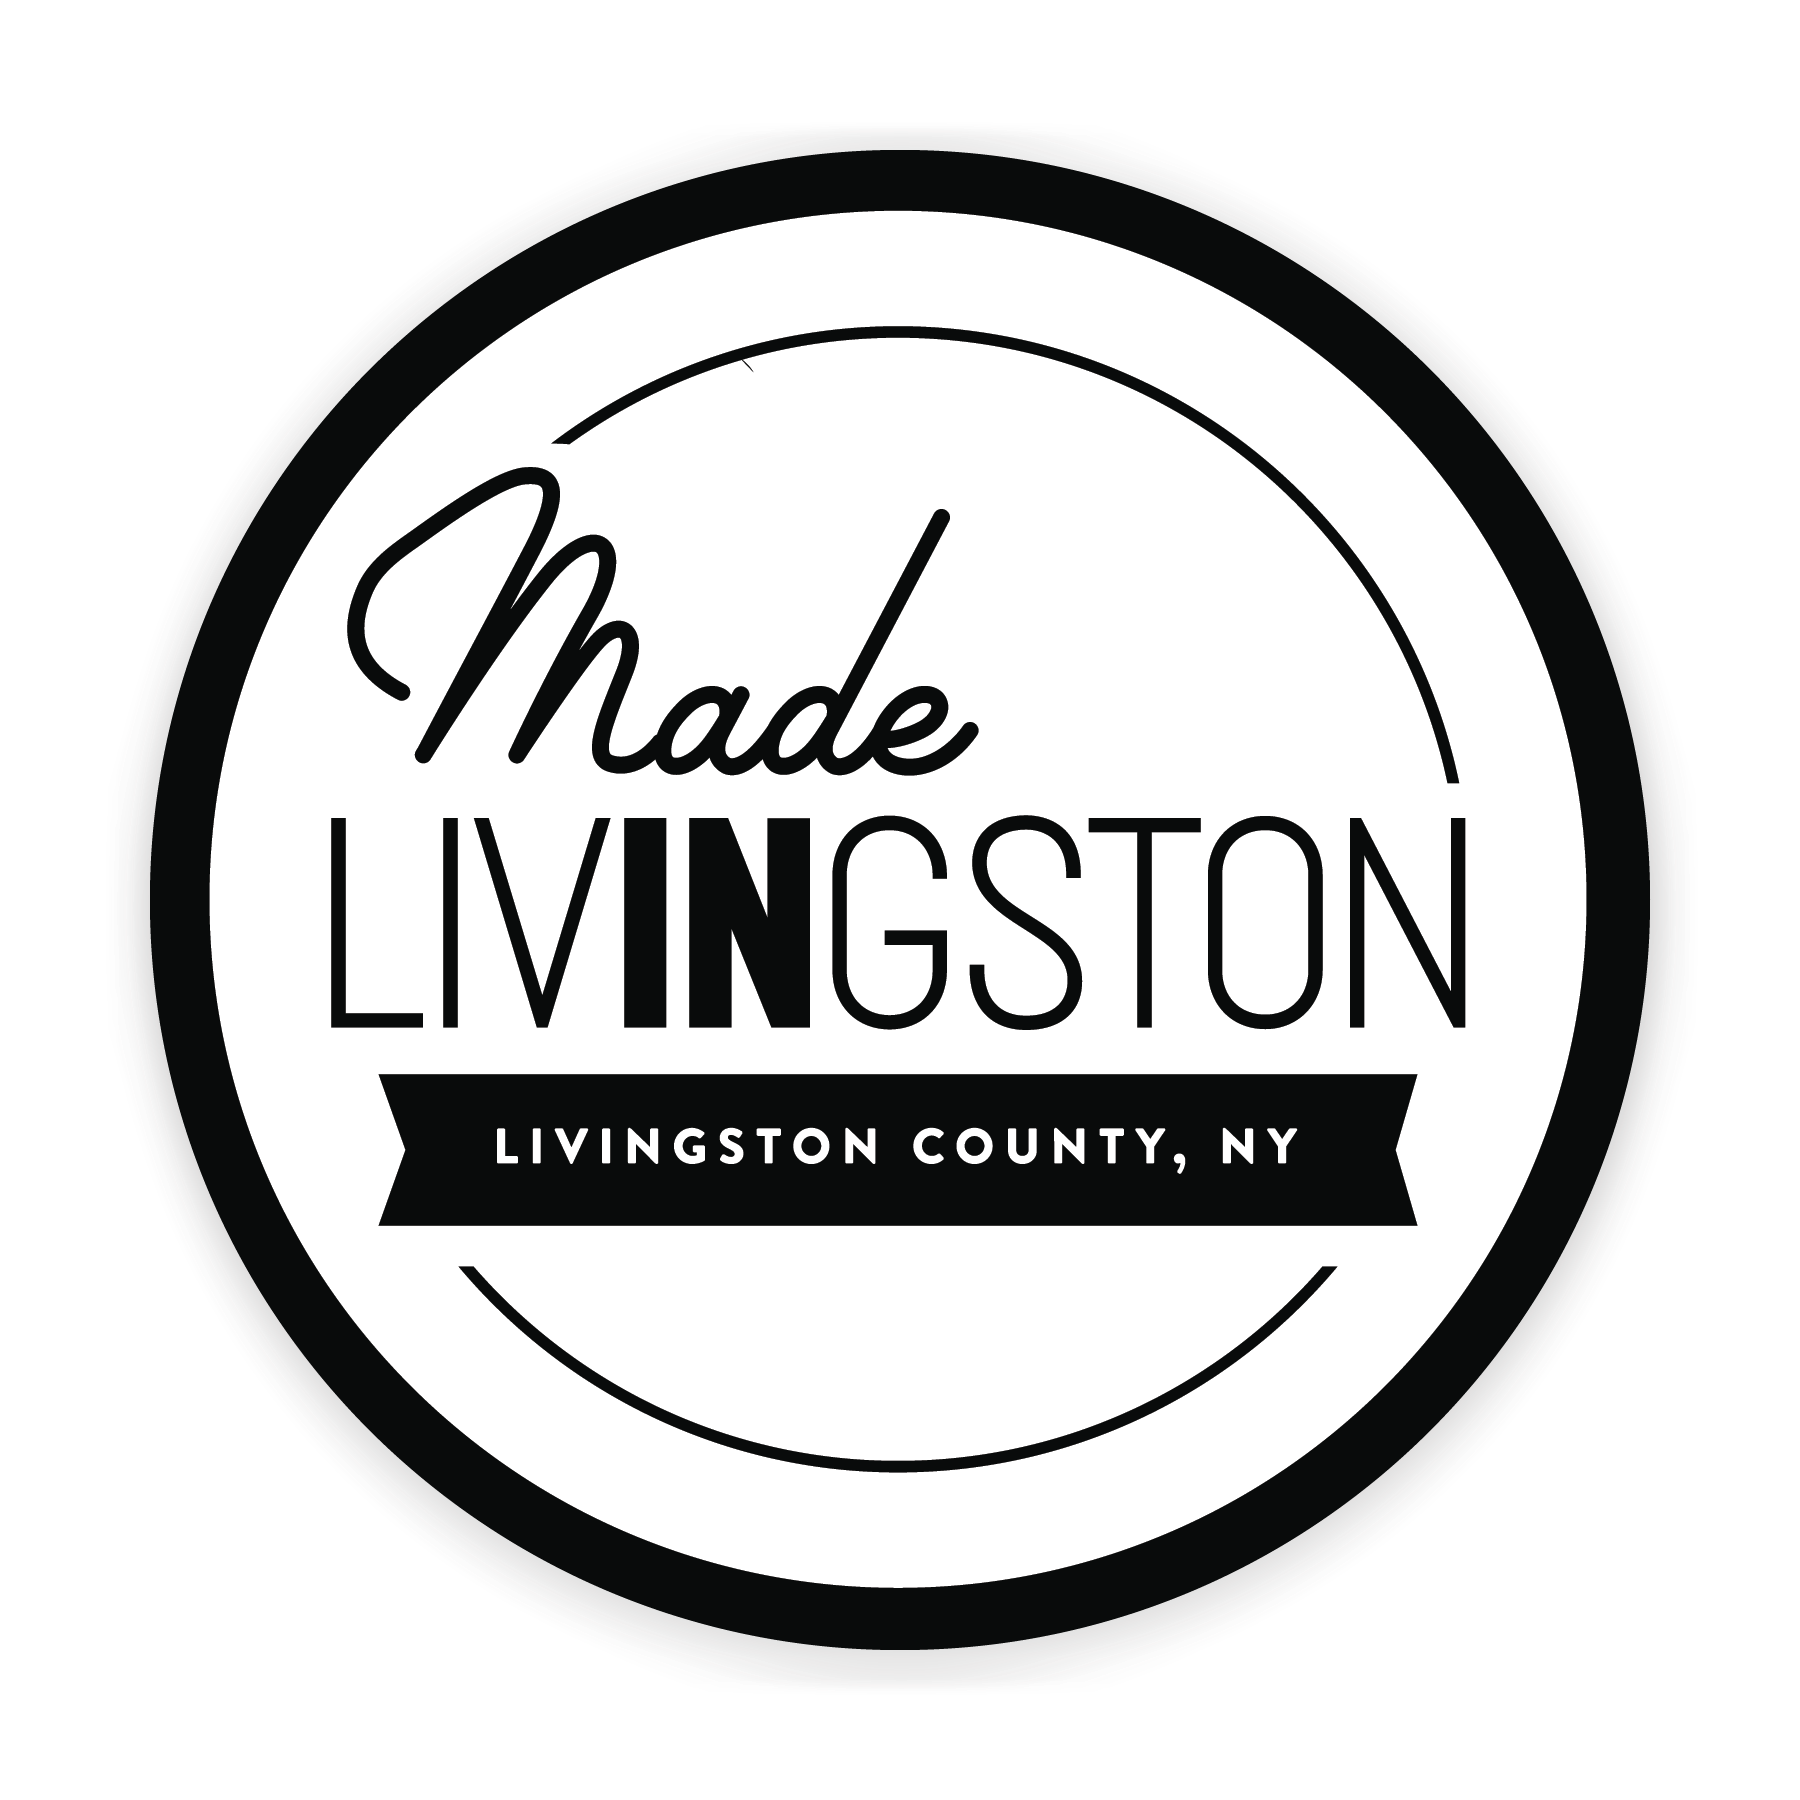 Made IN Livingston, Livingston County NY, Livingston County Chamber of Commerce & Tourism